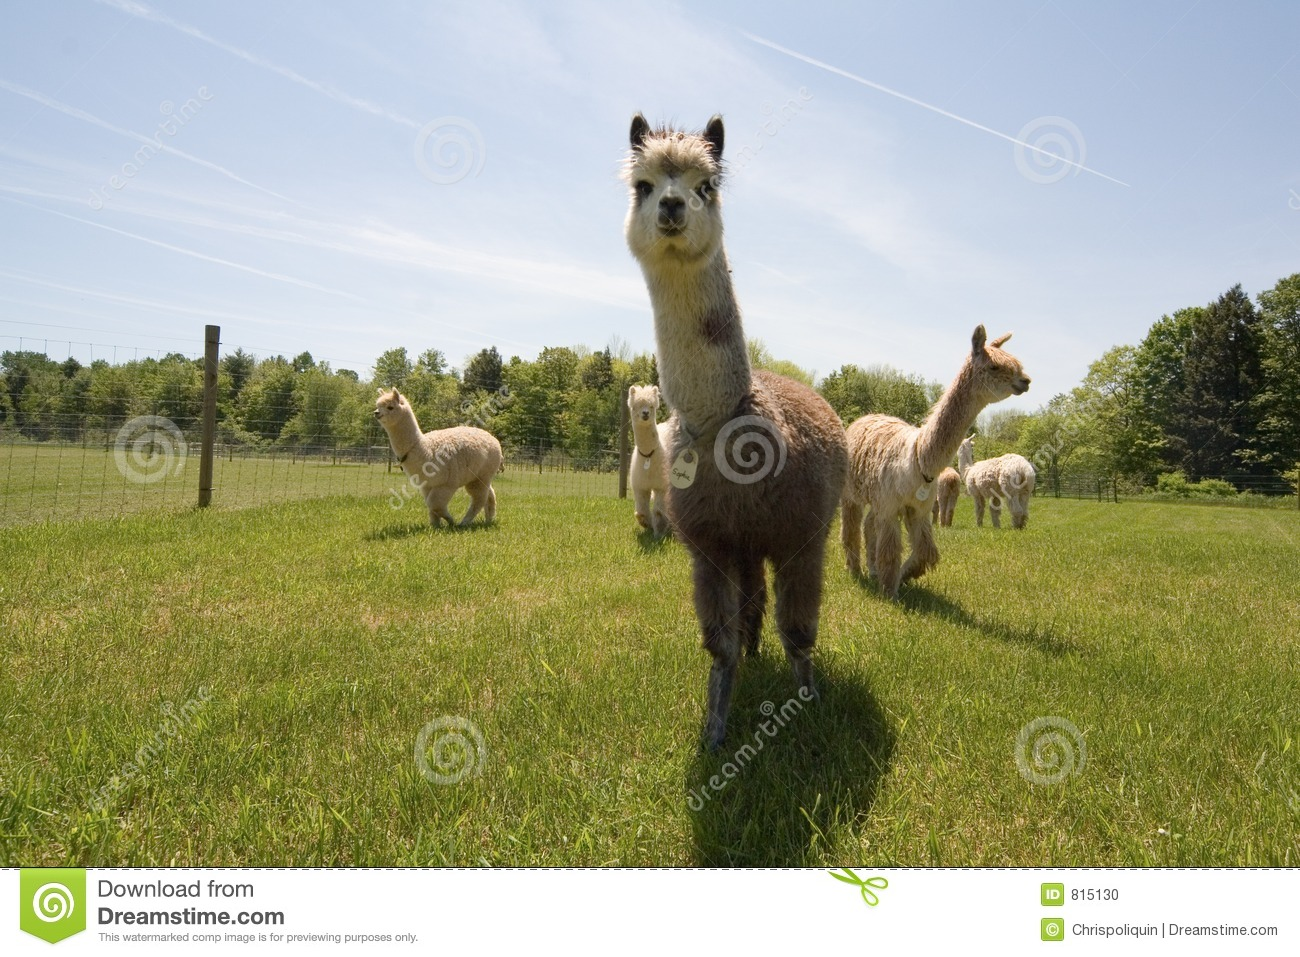 WELCOME TO ALPACANATION